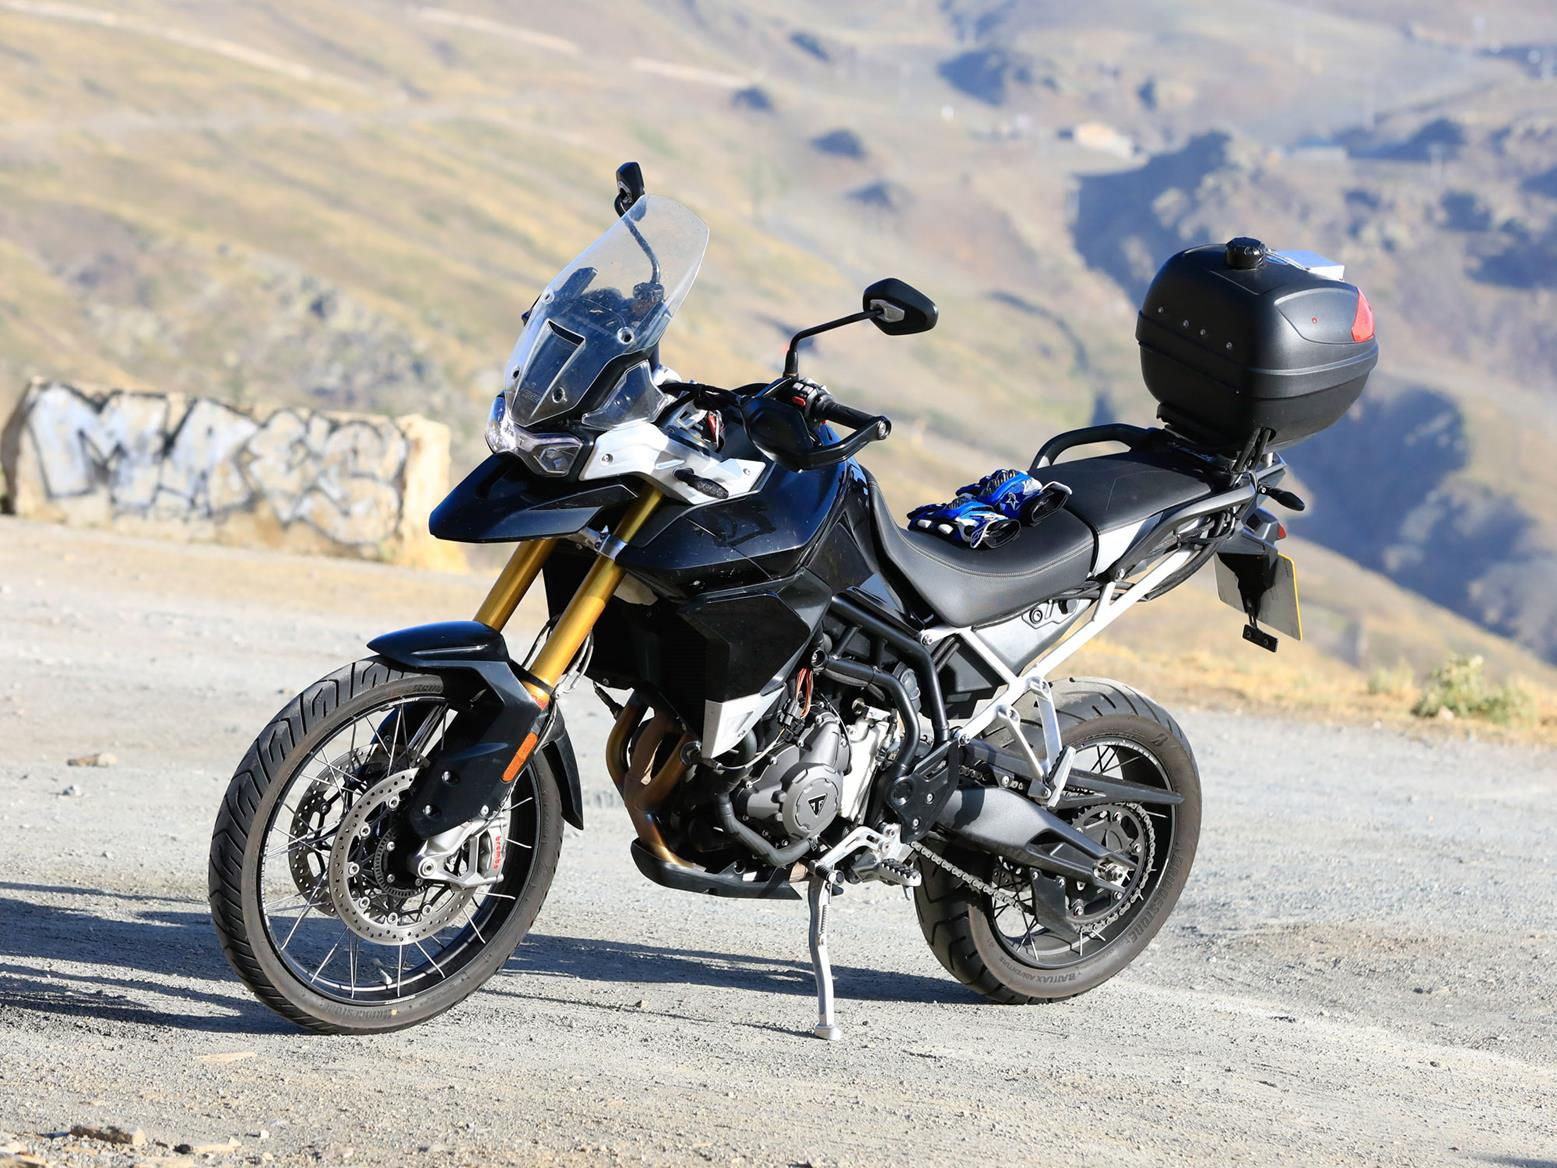 Triumph Tiger side profile in high quality